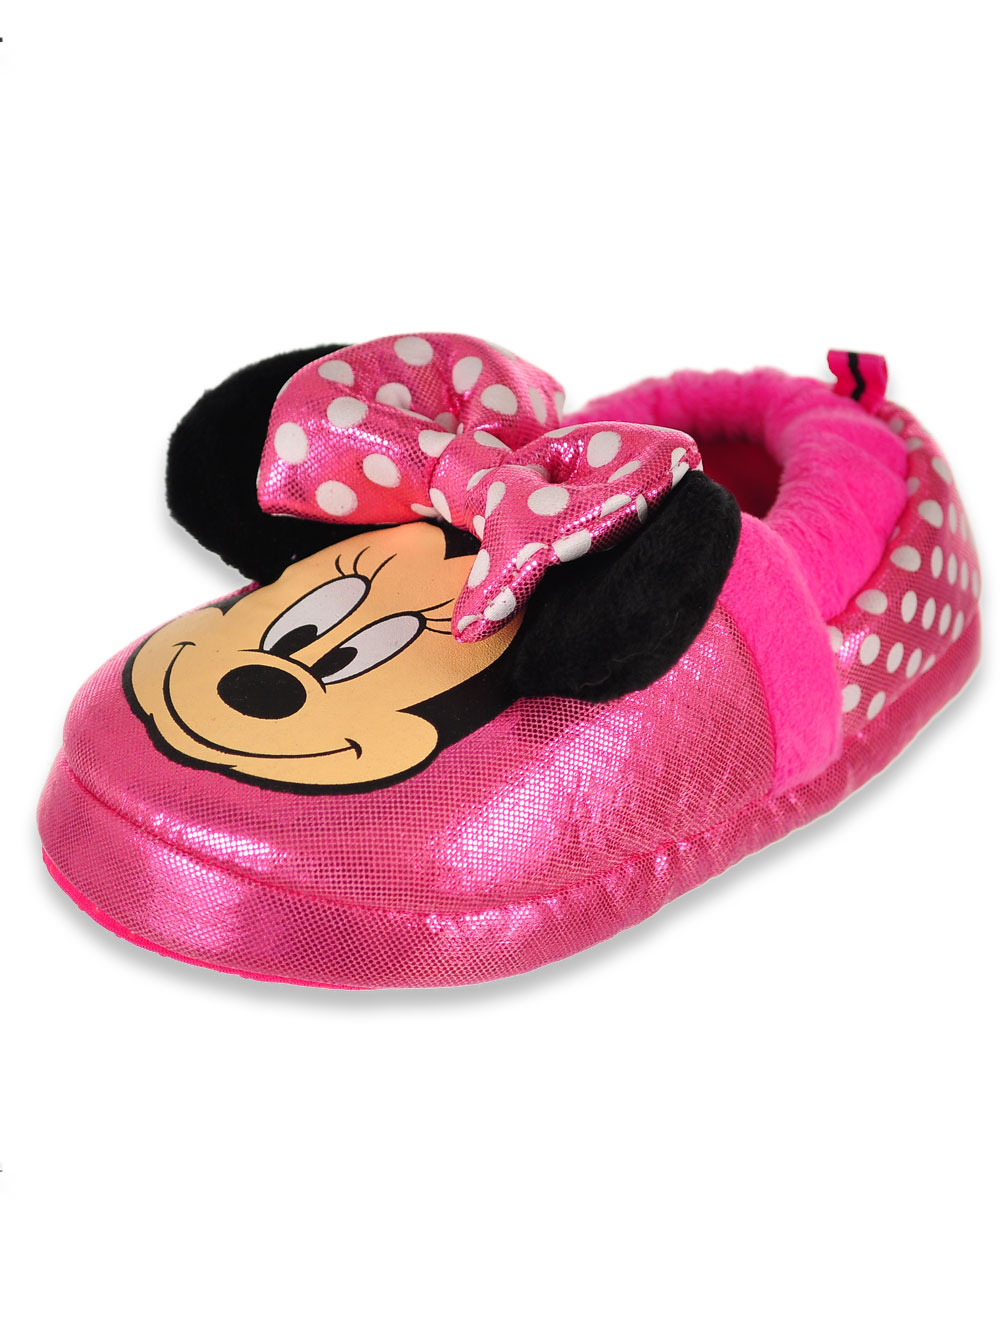 Sandals Minnie Mouse Slippers